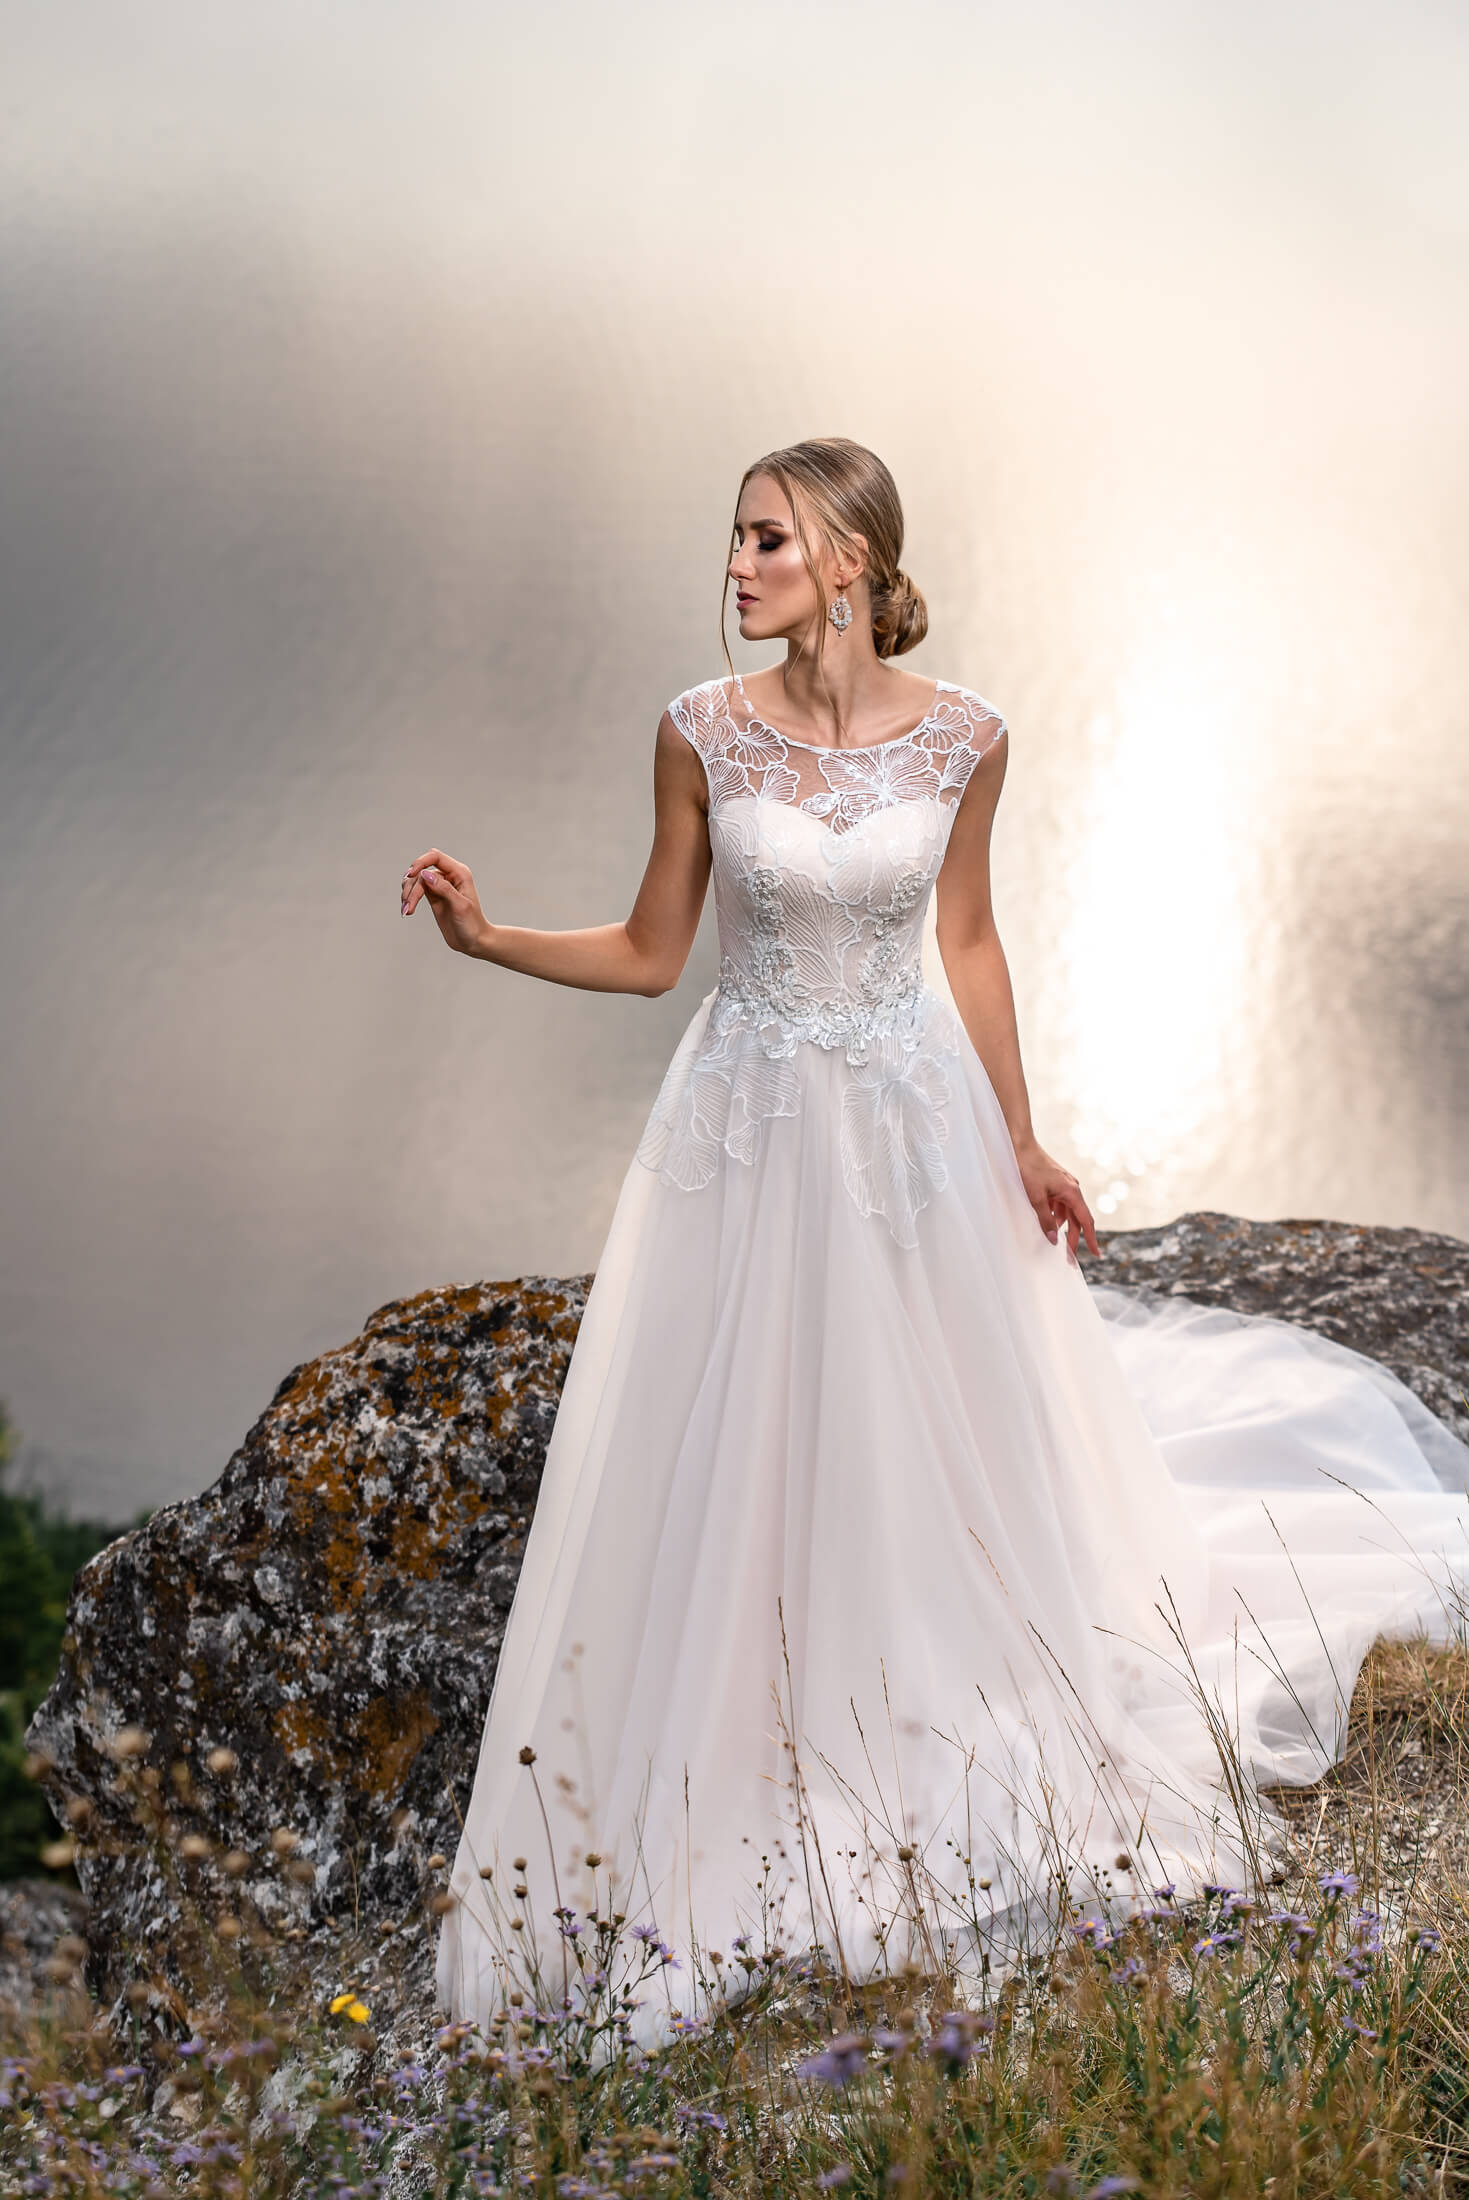 https://kayawedding.com/images/stories/virtuemart/product/SIG_2198 - 2 - 21.jpg